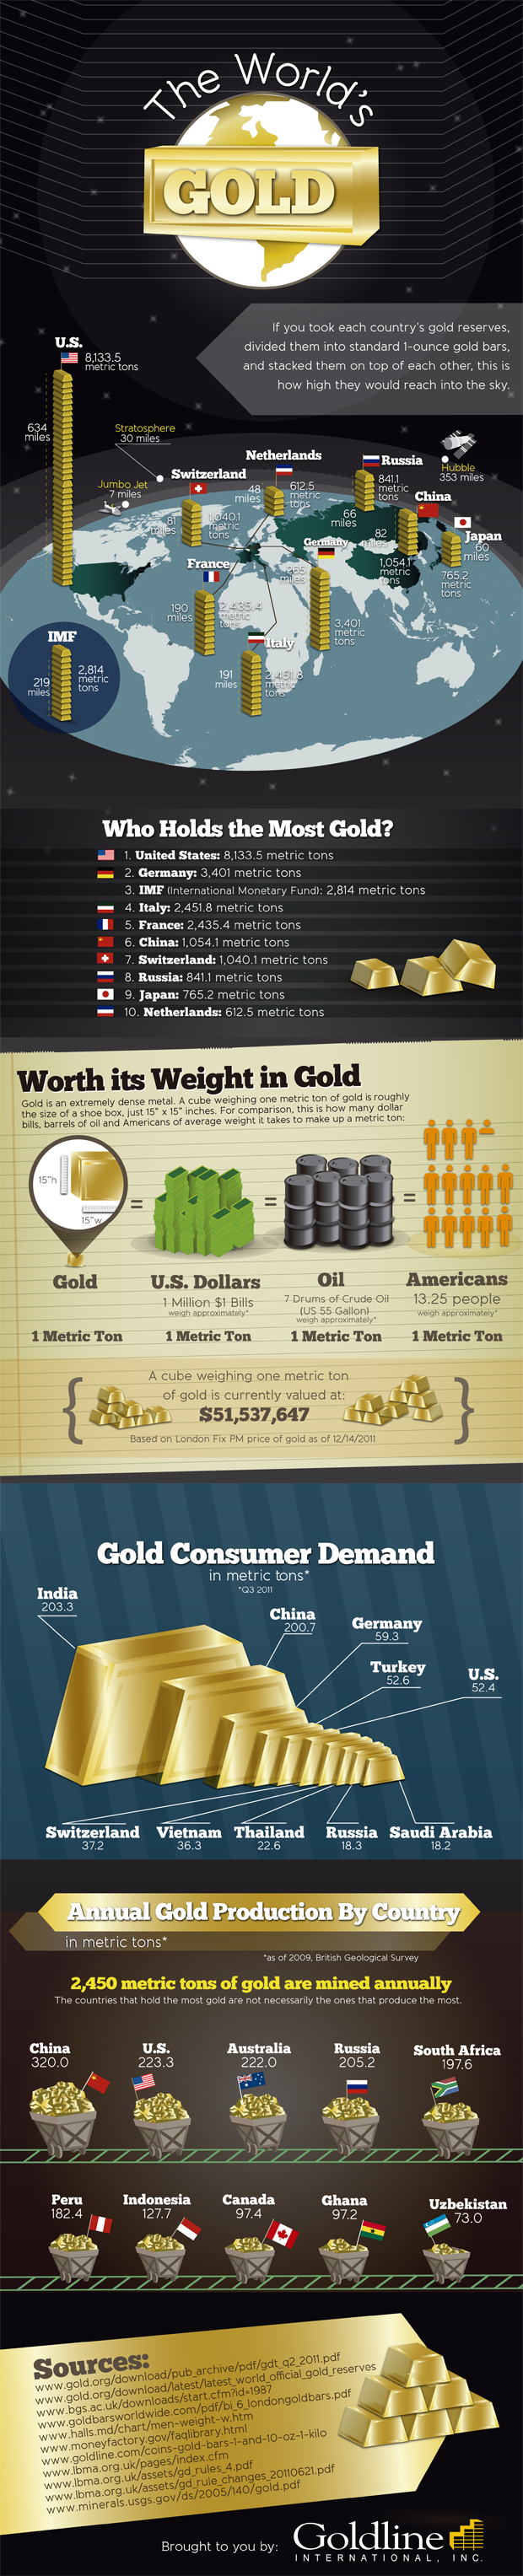 gold-reserves-supply